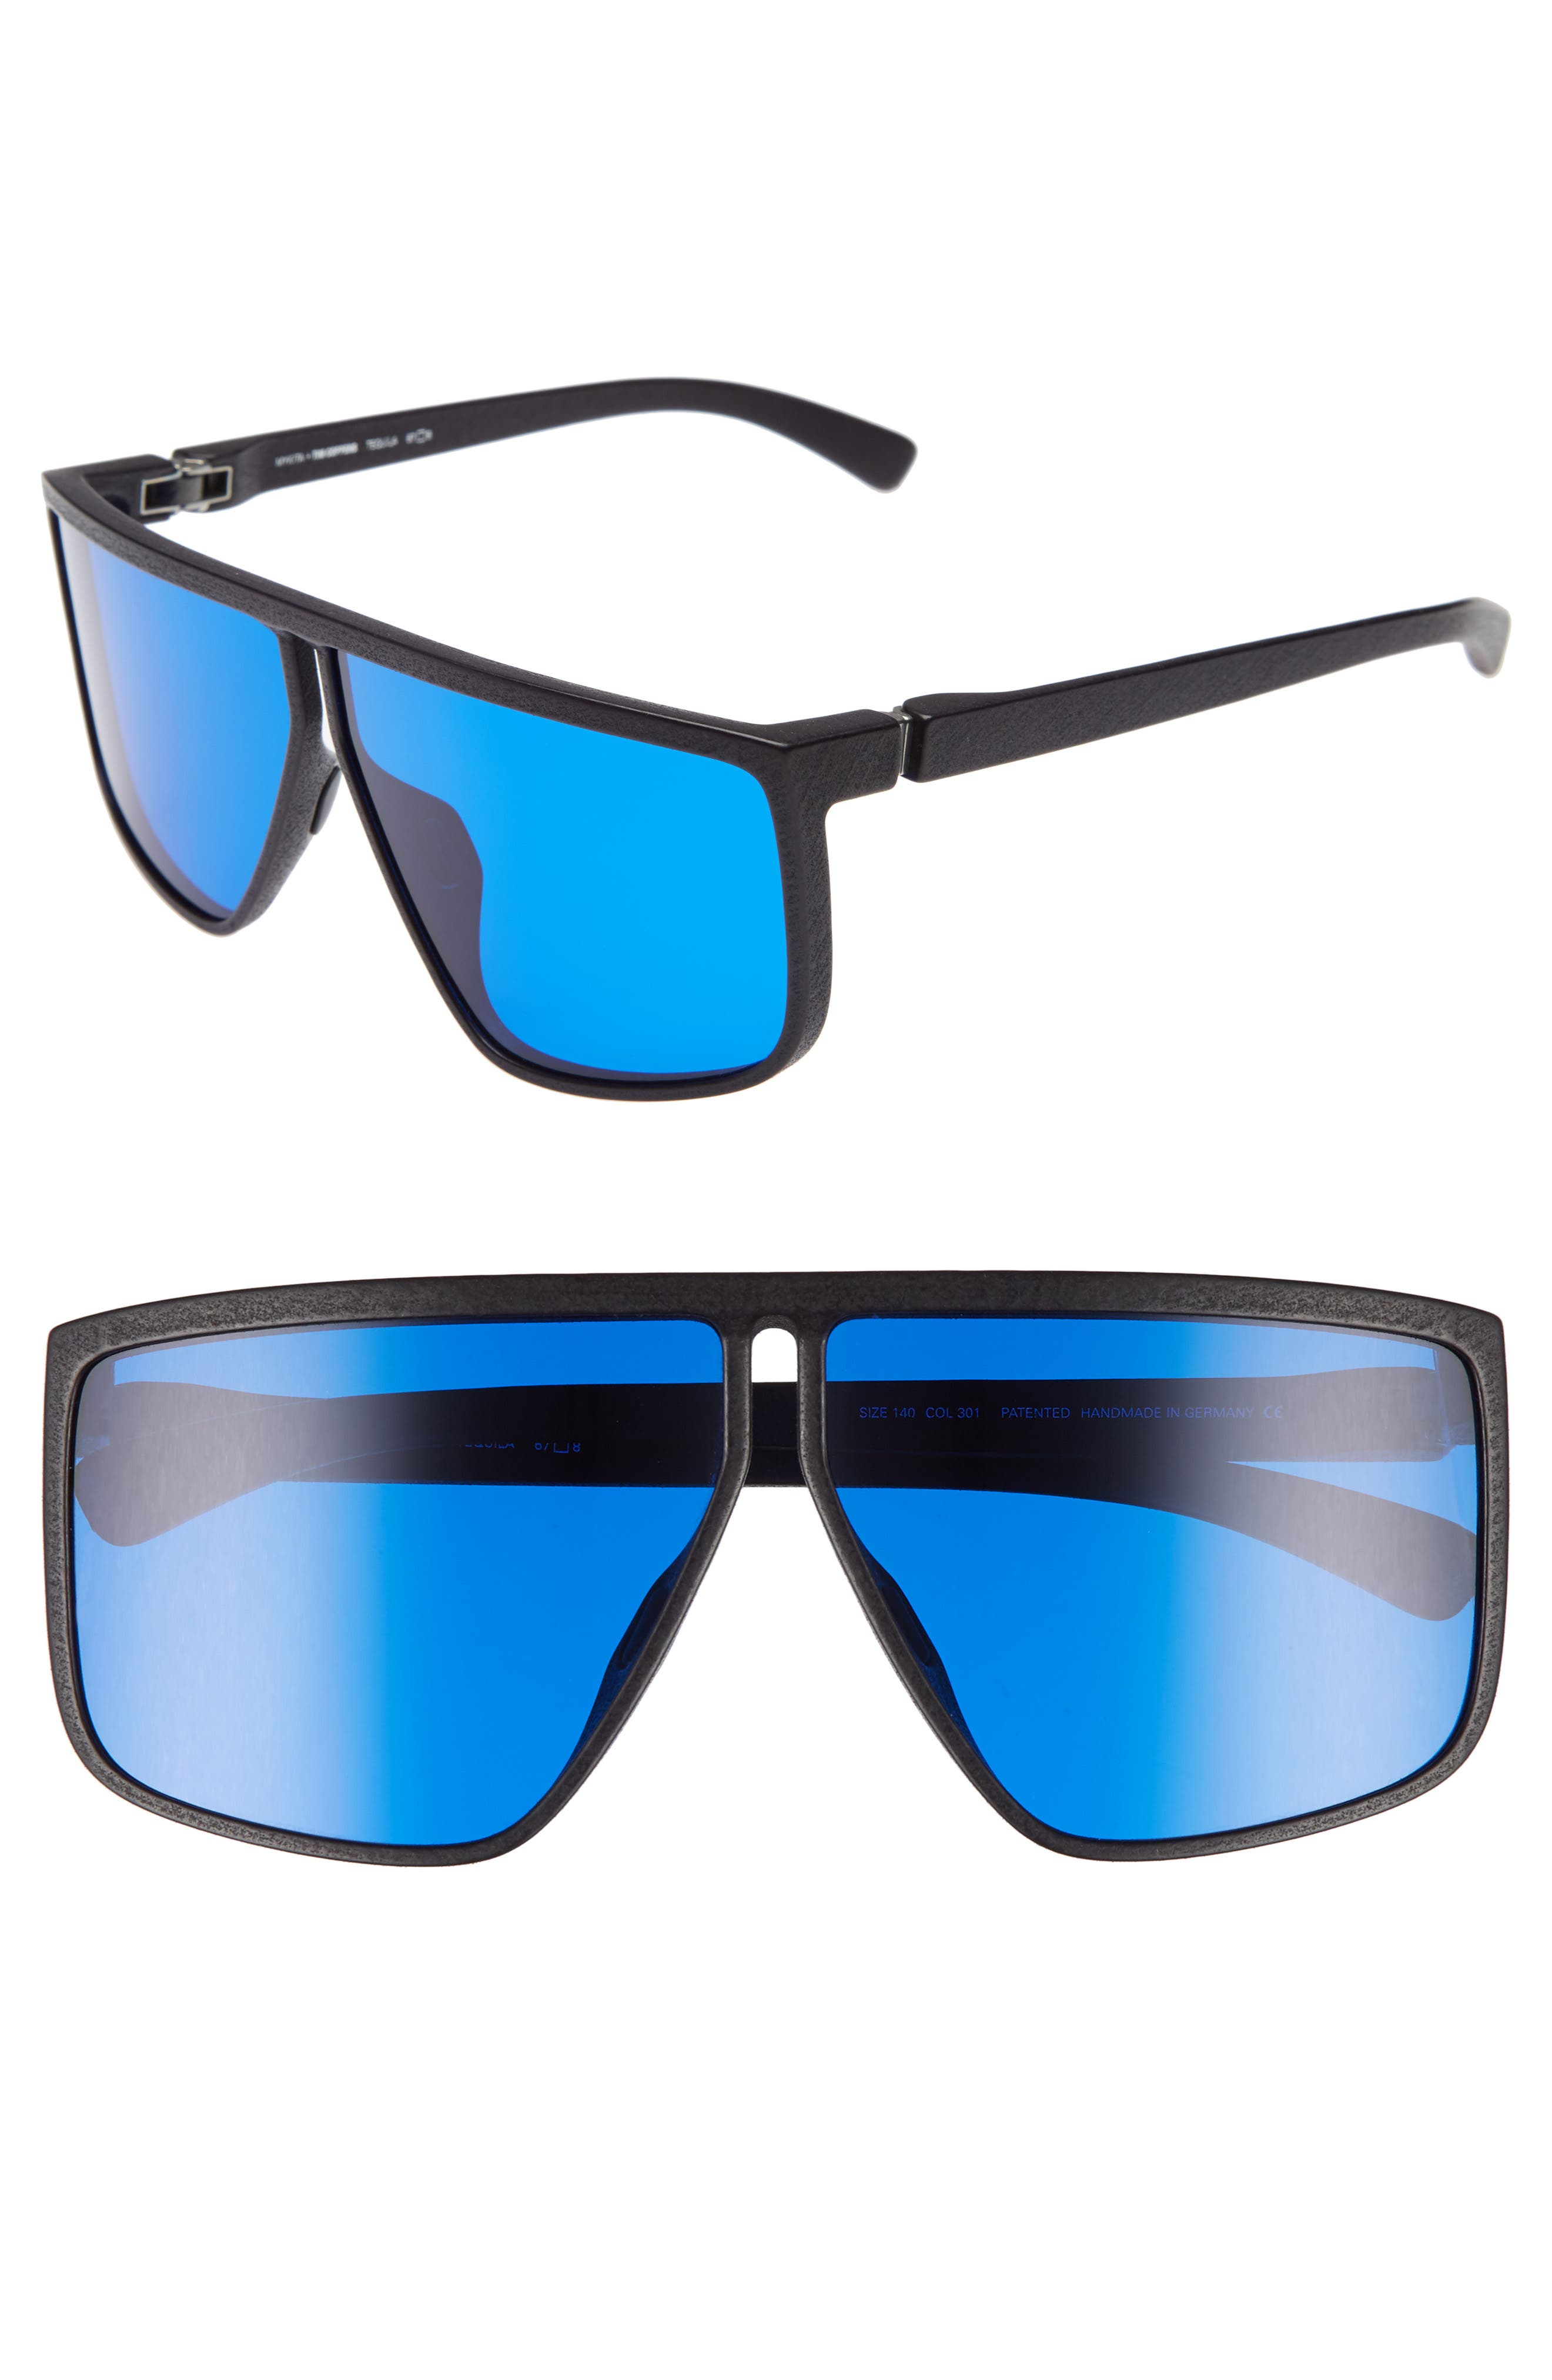 Tequila 67mm Sunglasses,                         Main,                         color, 001